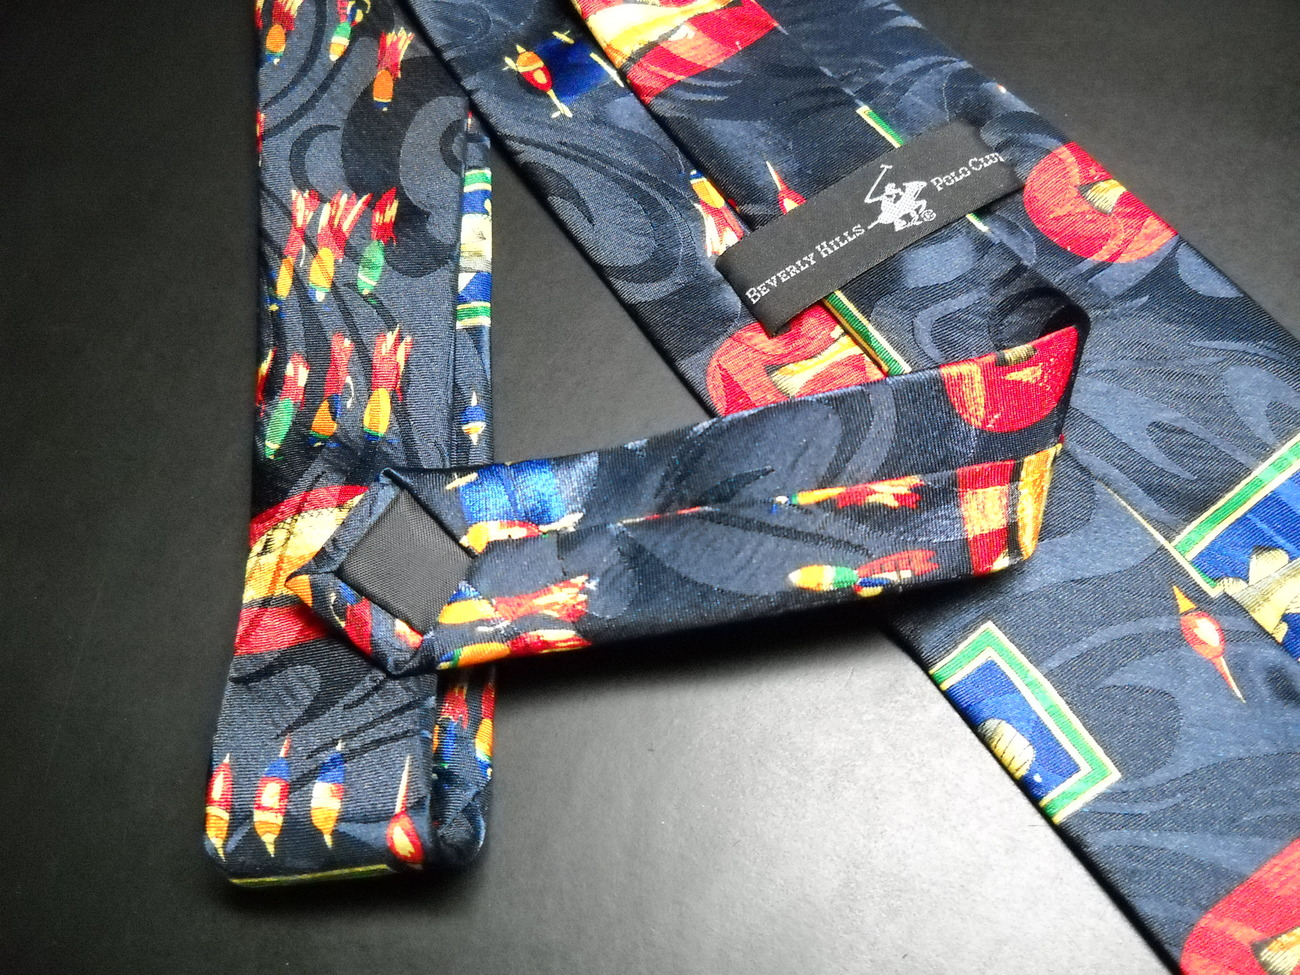 Beverly Hills Polo Club Neck Tie Fishing Theme Colorful Fish Lures on Dark Blue